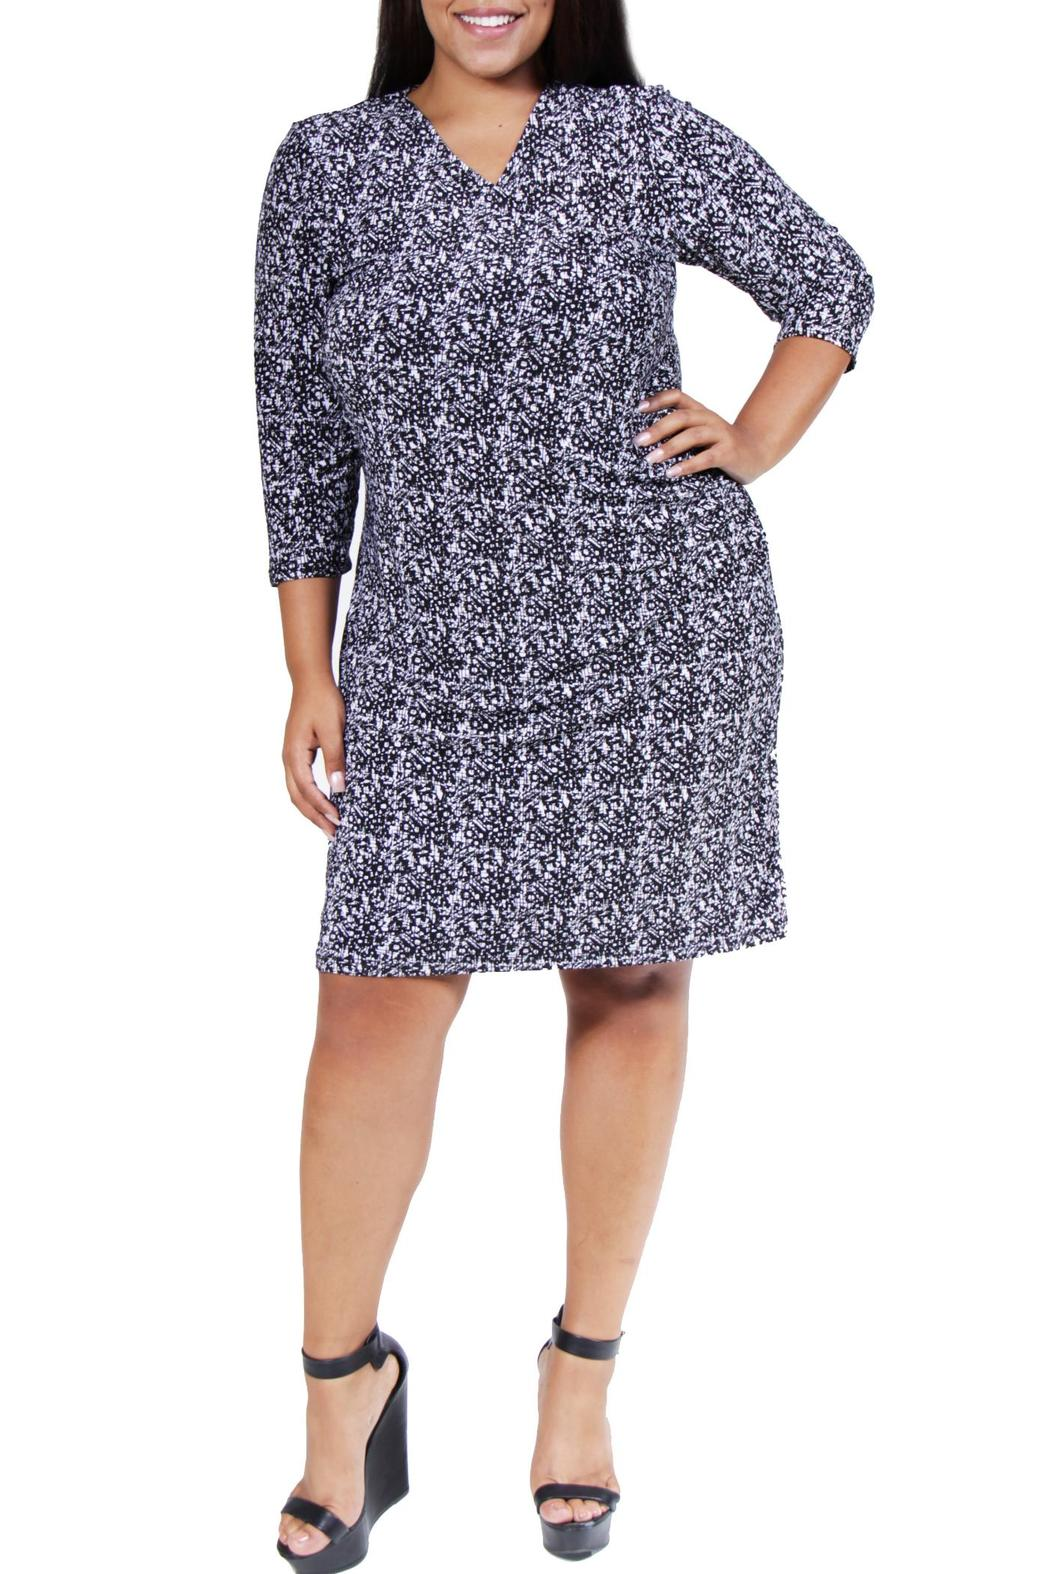 We carry a wide range of quality clothes for today's plus-size woman. Visit our boutique on charming College Avenue in Oakland, California! Shop our current selection of hard-to-find contemporary styles, put together unique looks, and enjoy our excellent personal service.